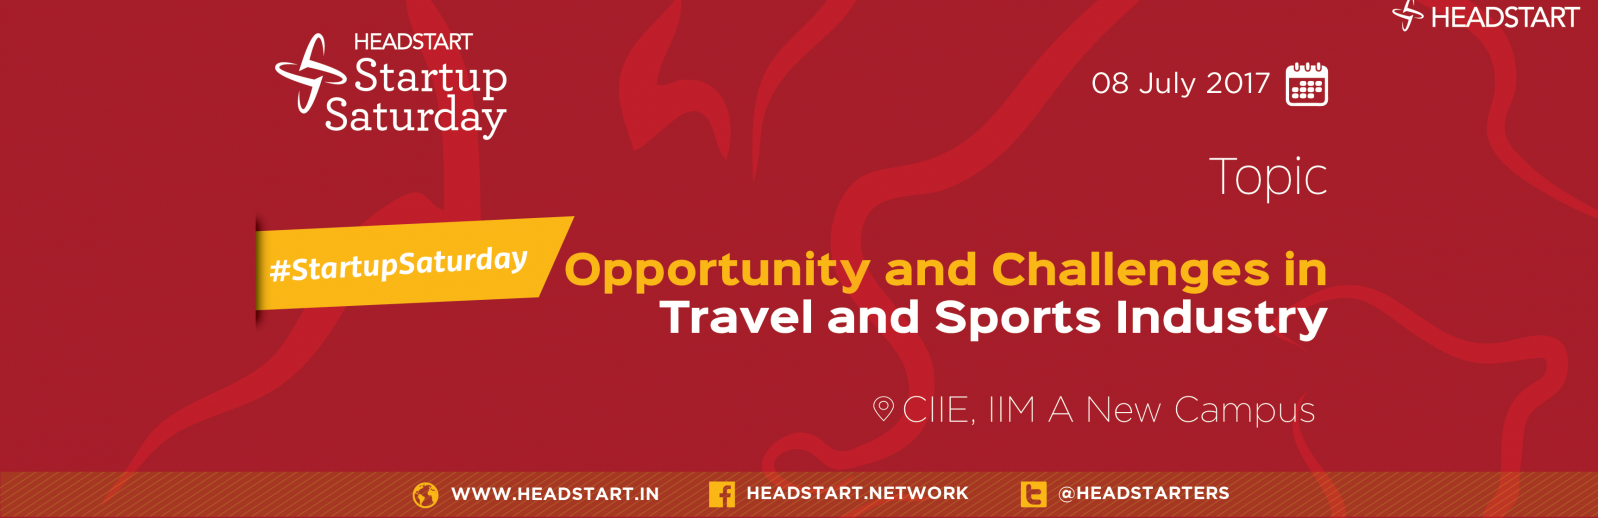 opportunities challenges travel sports industry